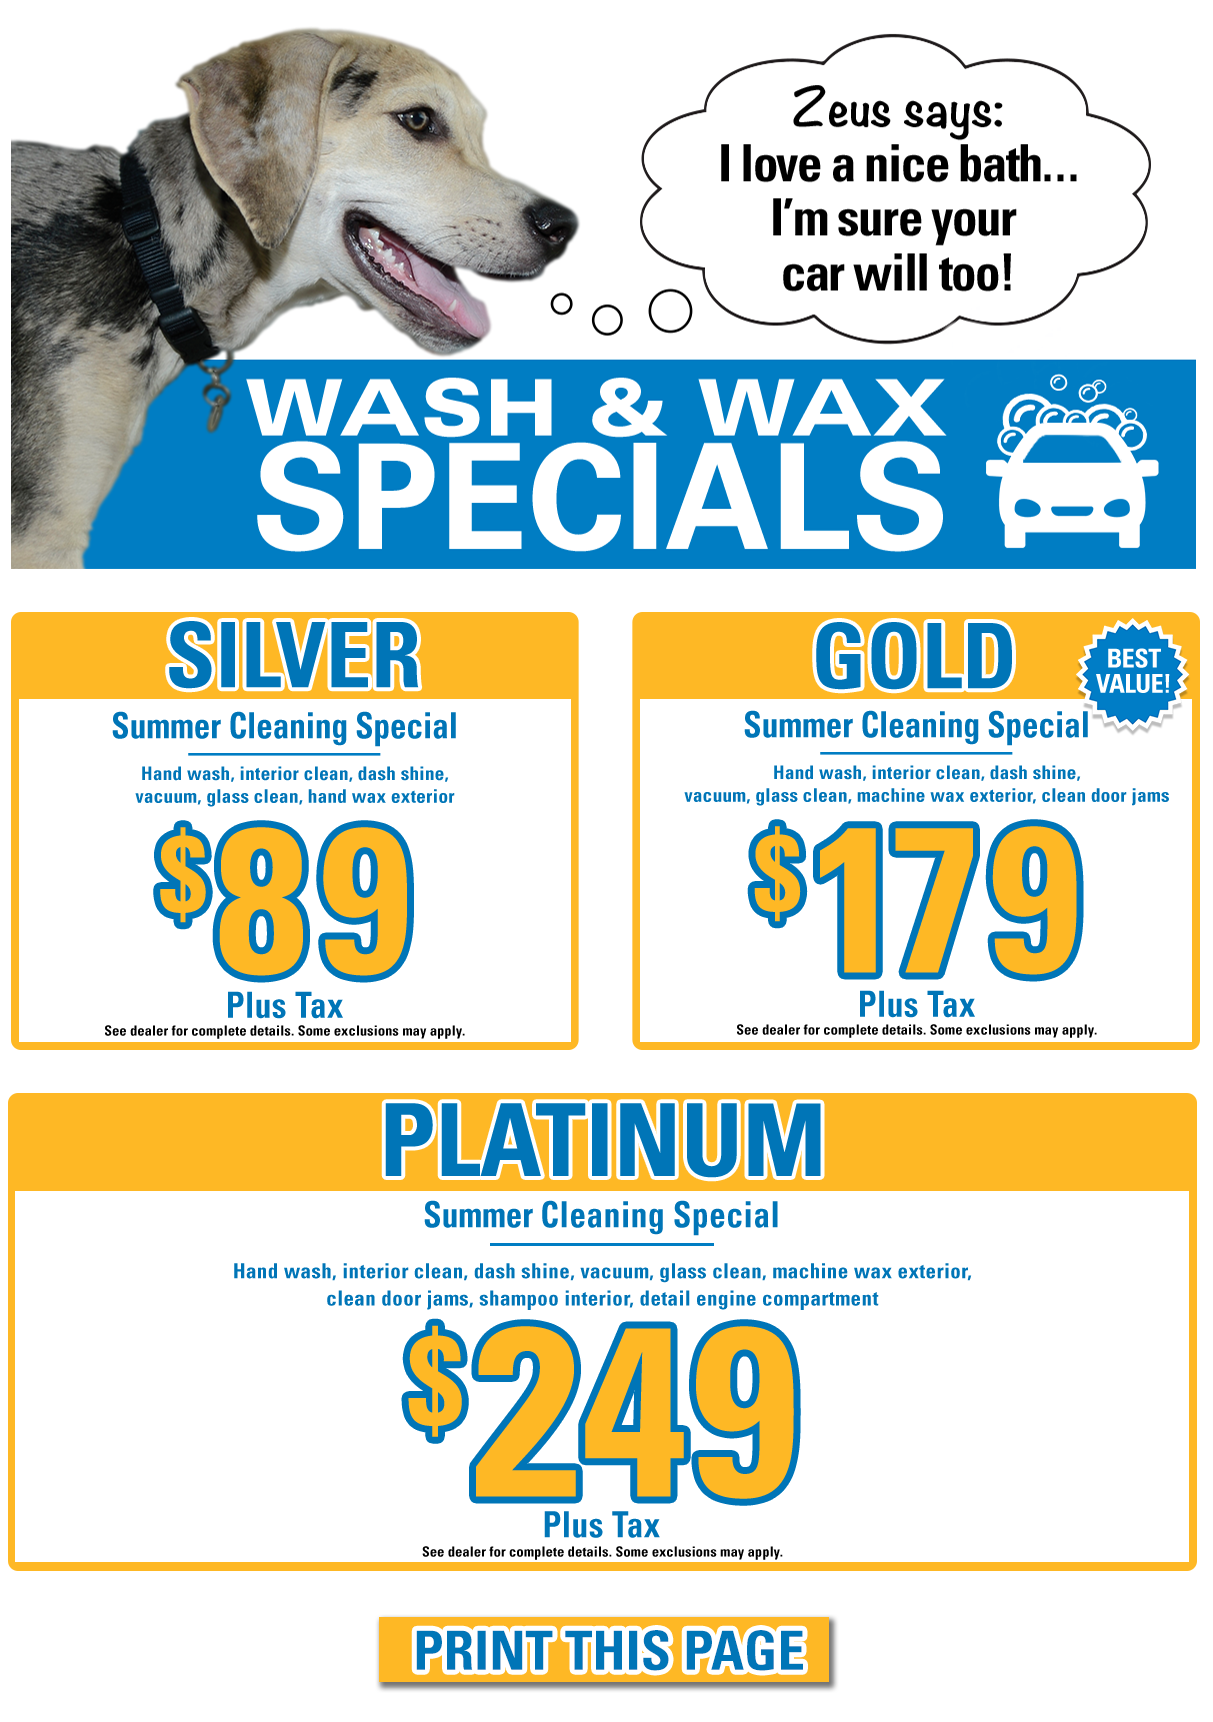 brandon-honda-wax-wash-specials